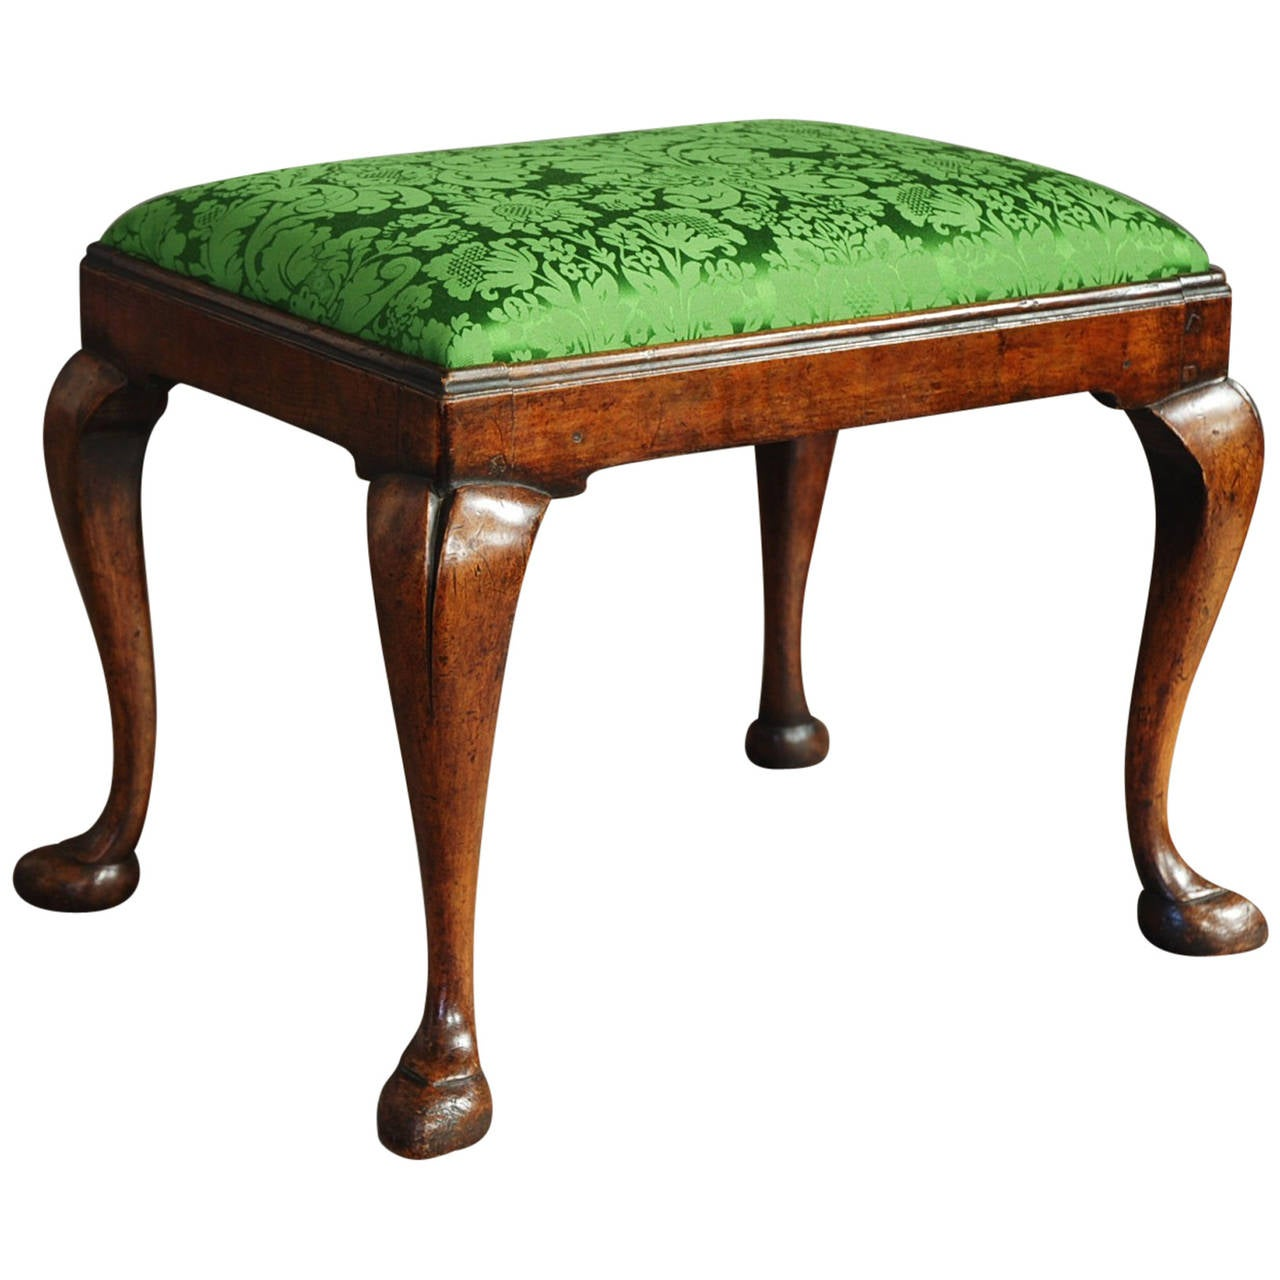 Early 20th Century Walnut Cabriole Leg Stool In The Queen Anne Style 1